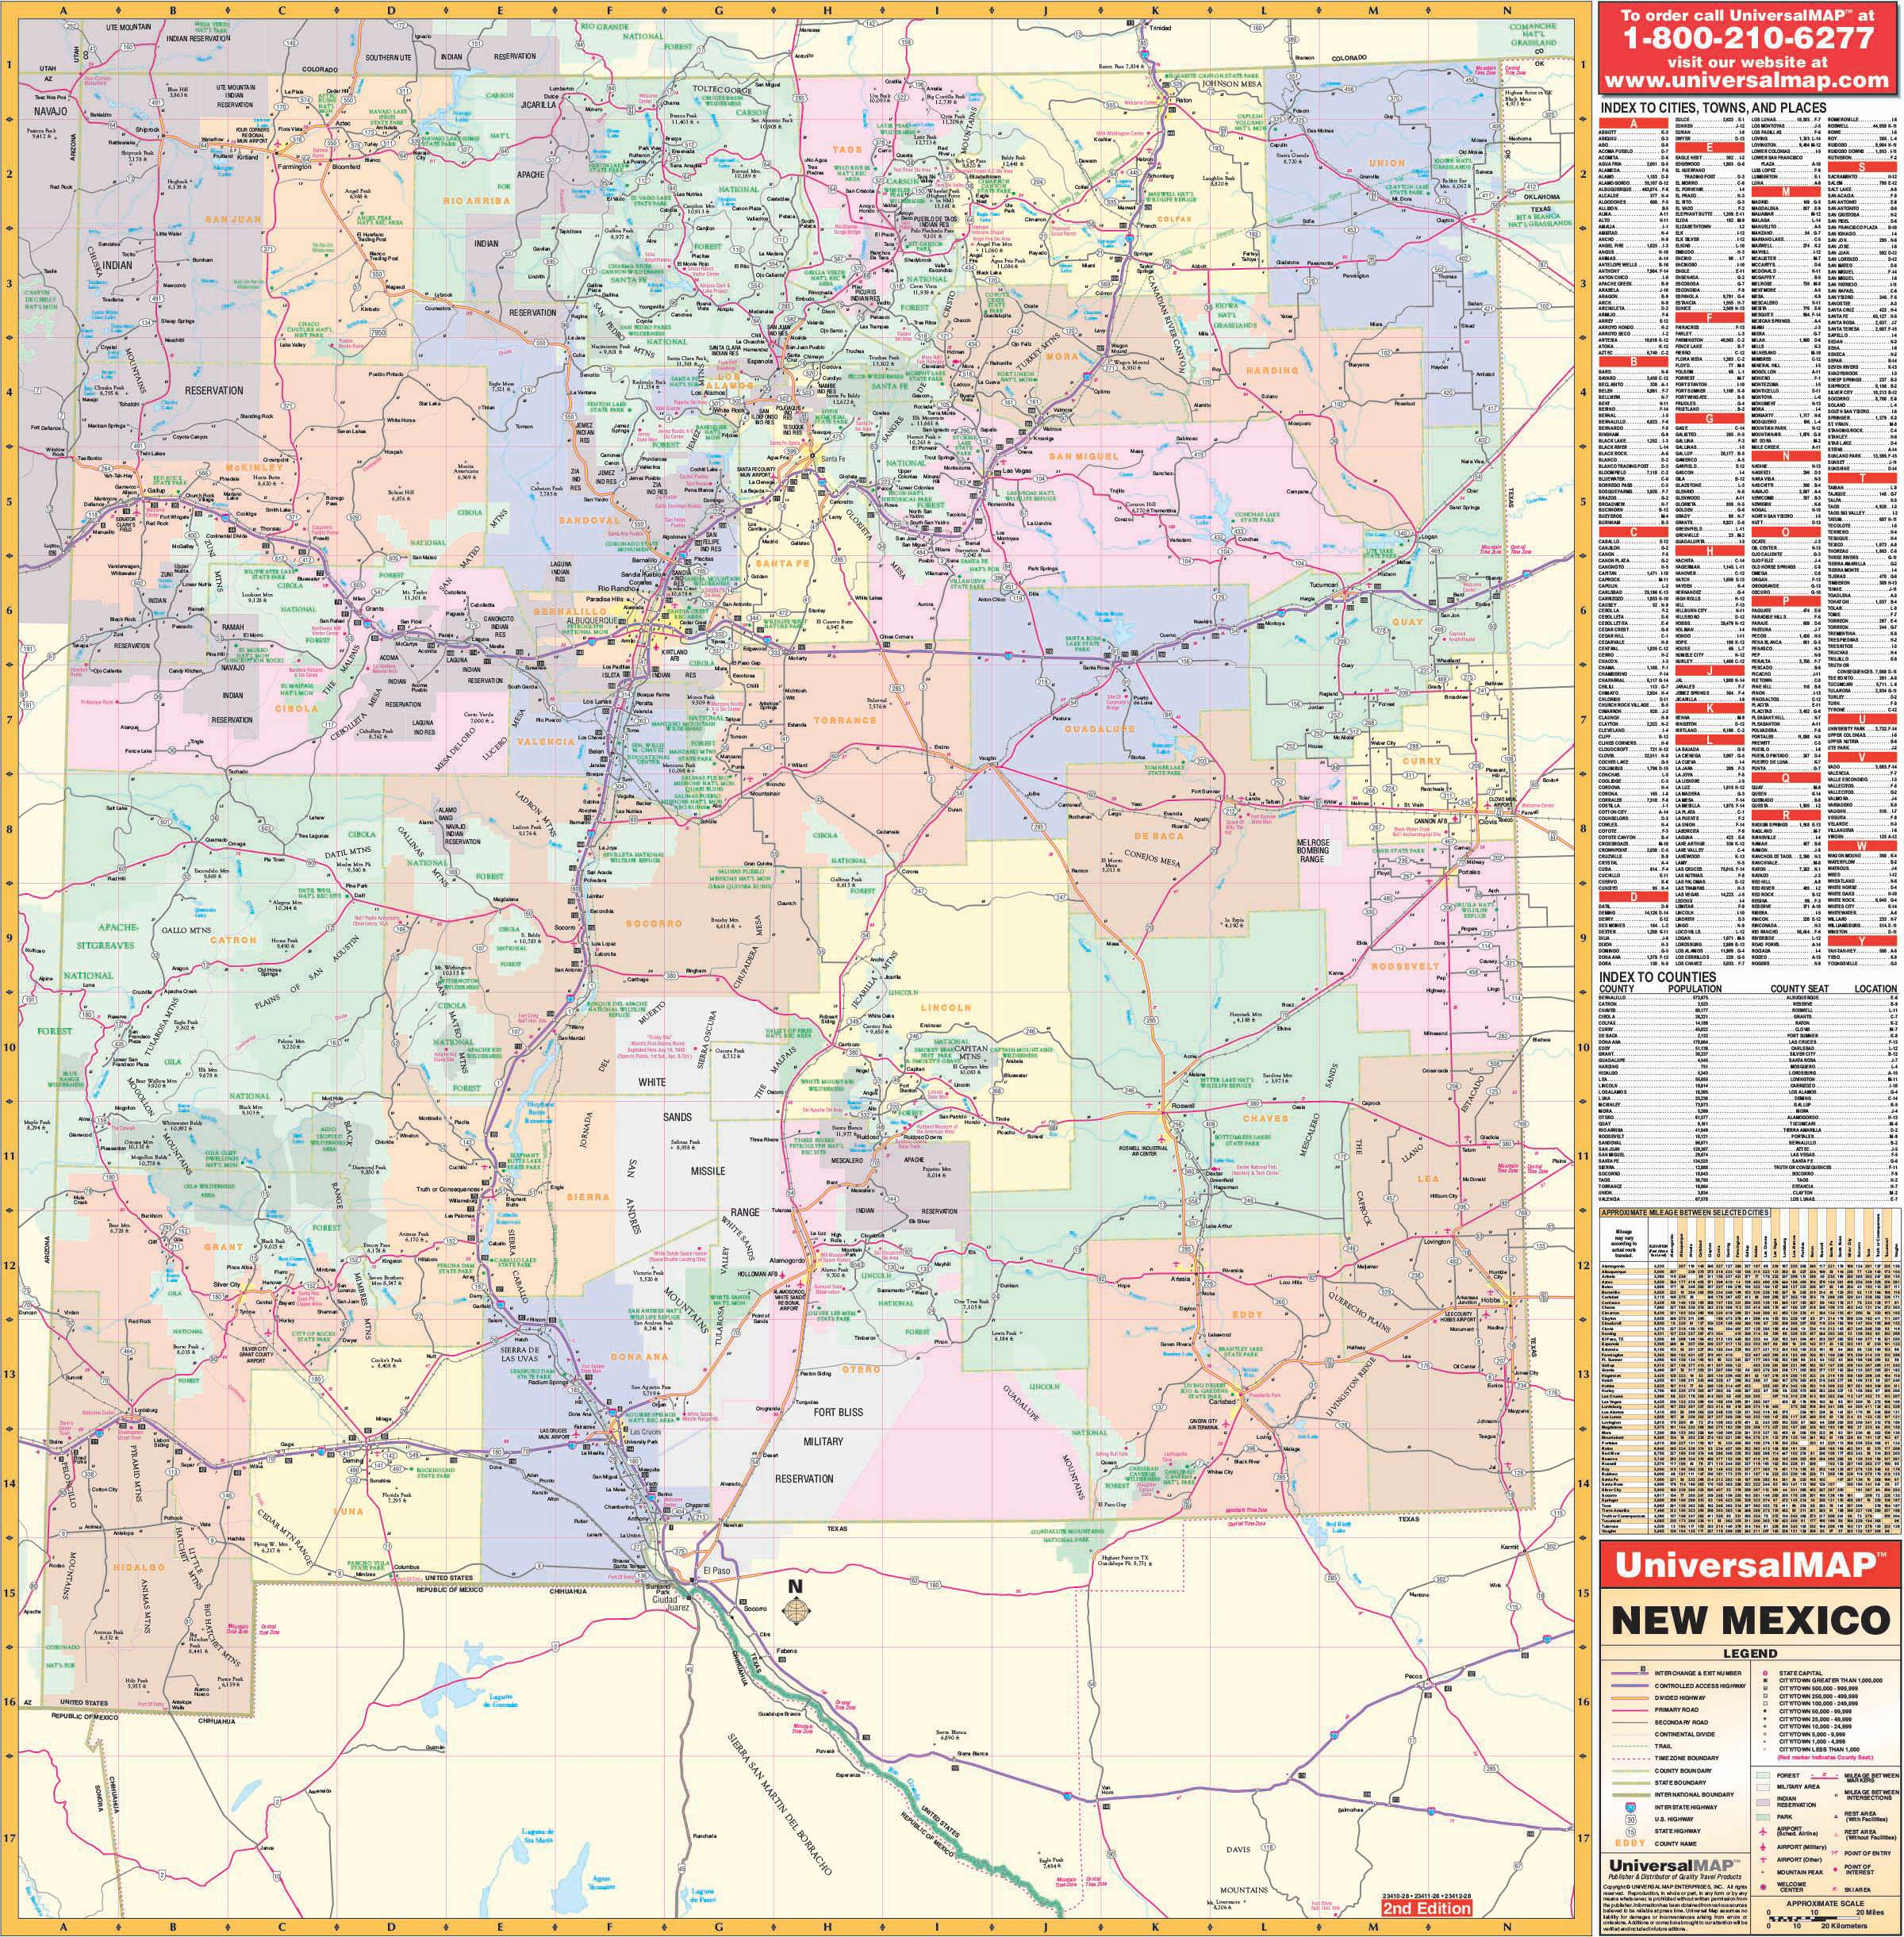 New Mexico State Wall Map – KAPPA MAP GROUP on